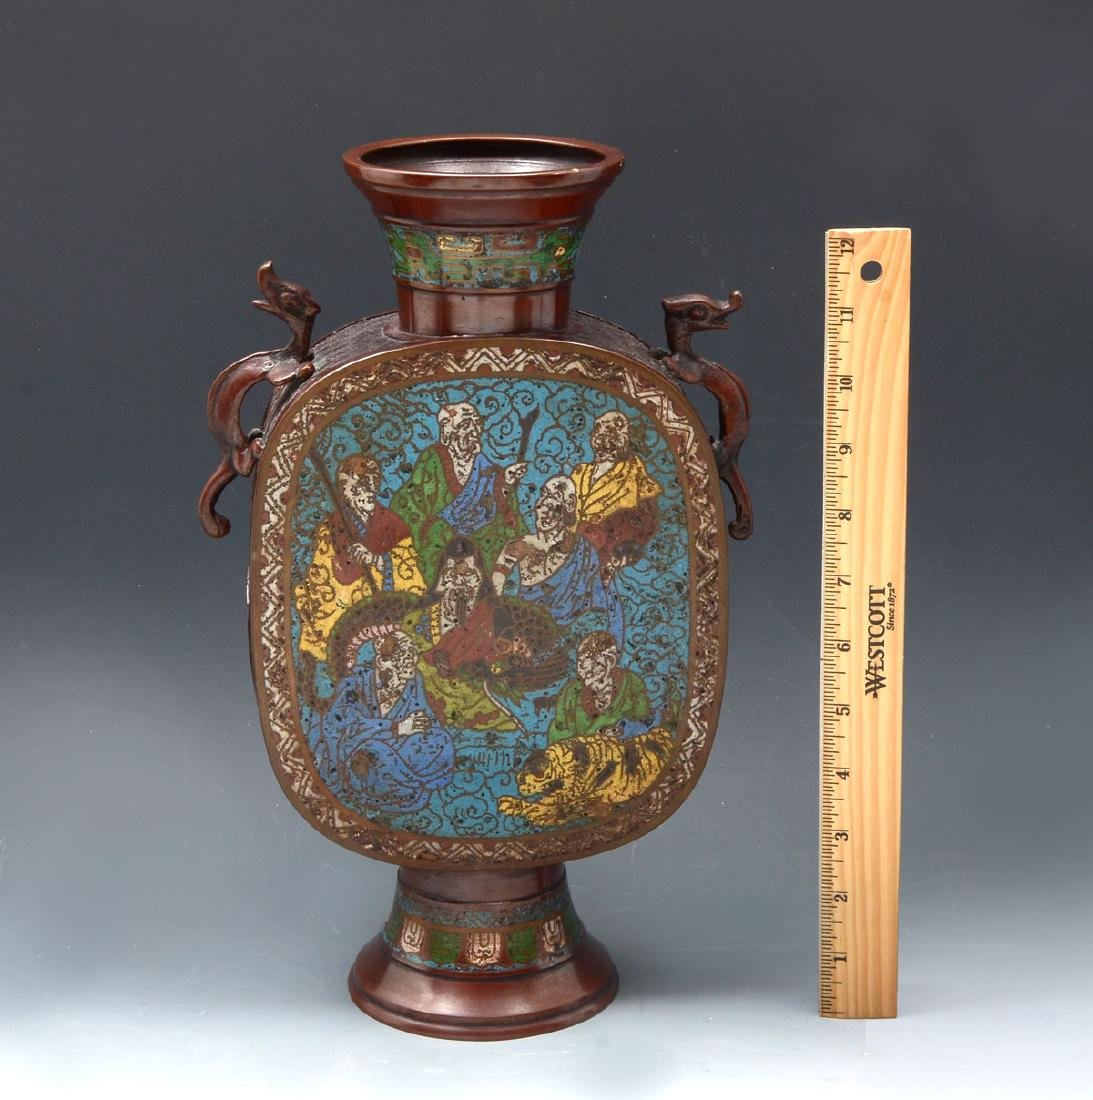 LATE 19TH/EARLY 20TH C. JAPANESE CHAMPLEVE VASE - 5